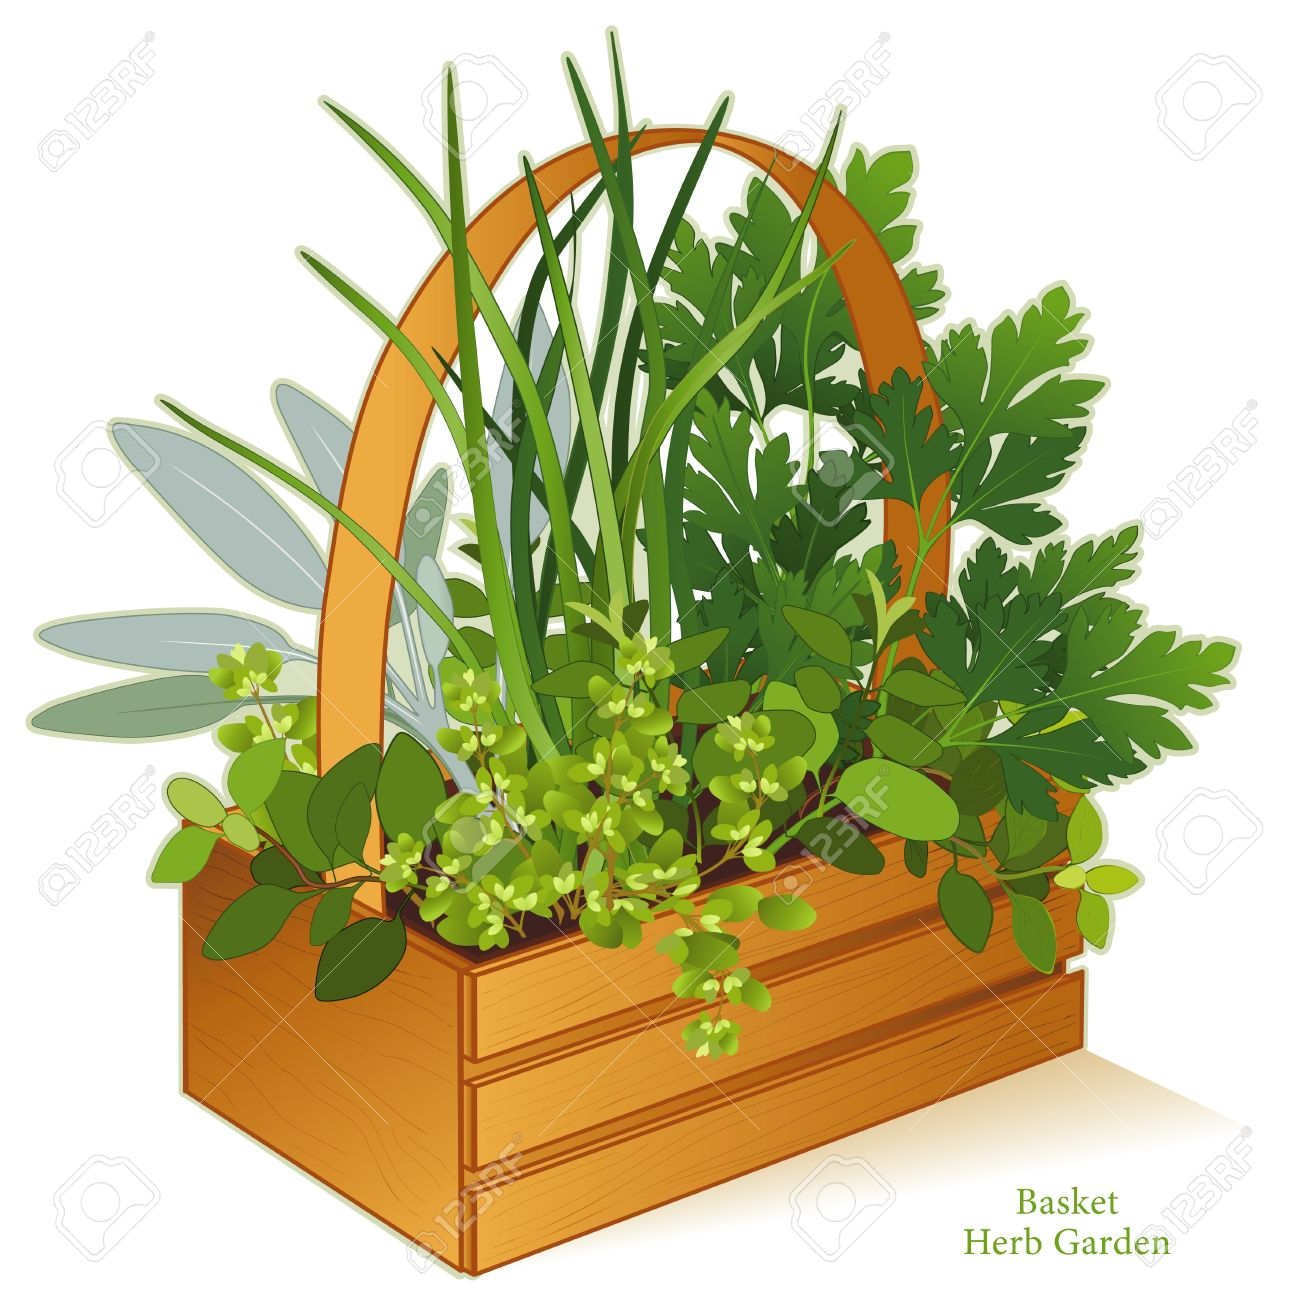 259 Marjoram Herb Stock Illustrations, Cliparts And Royalty Free.